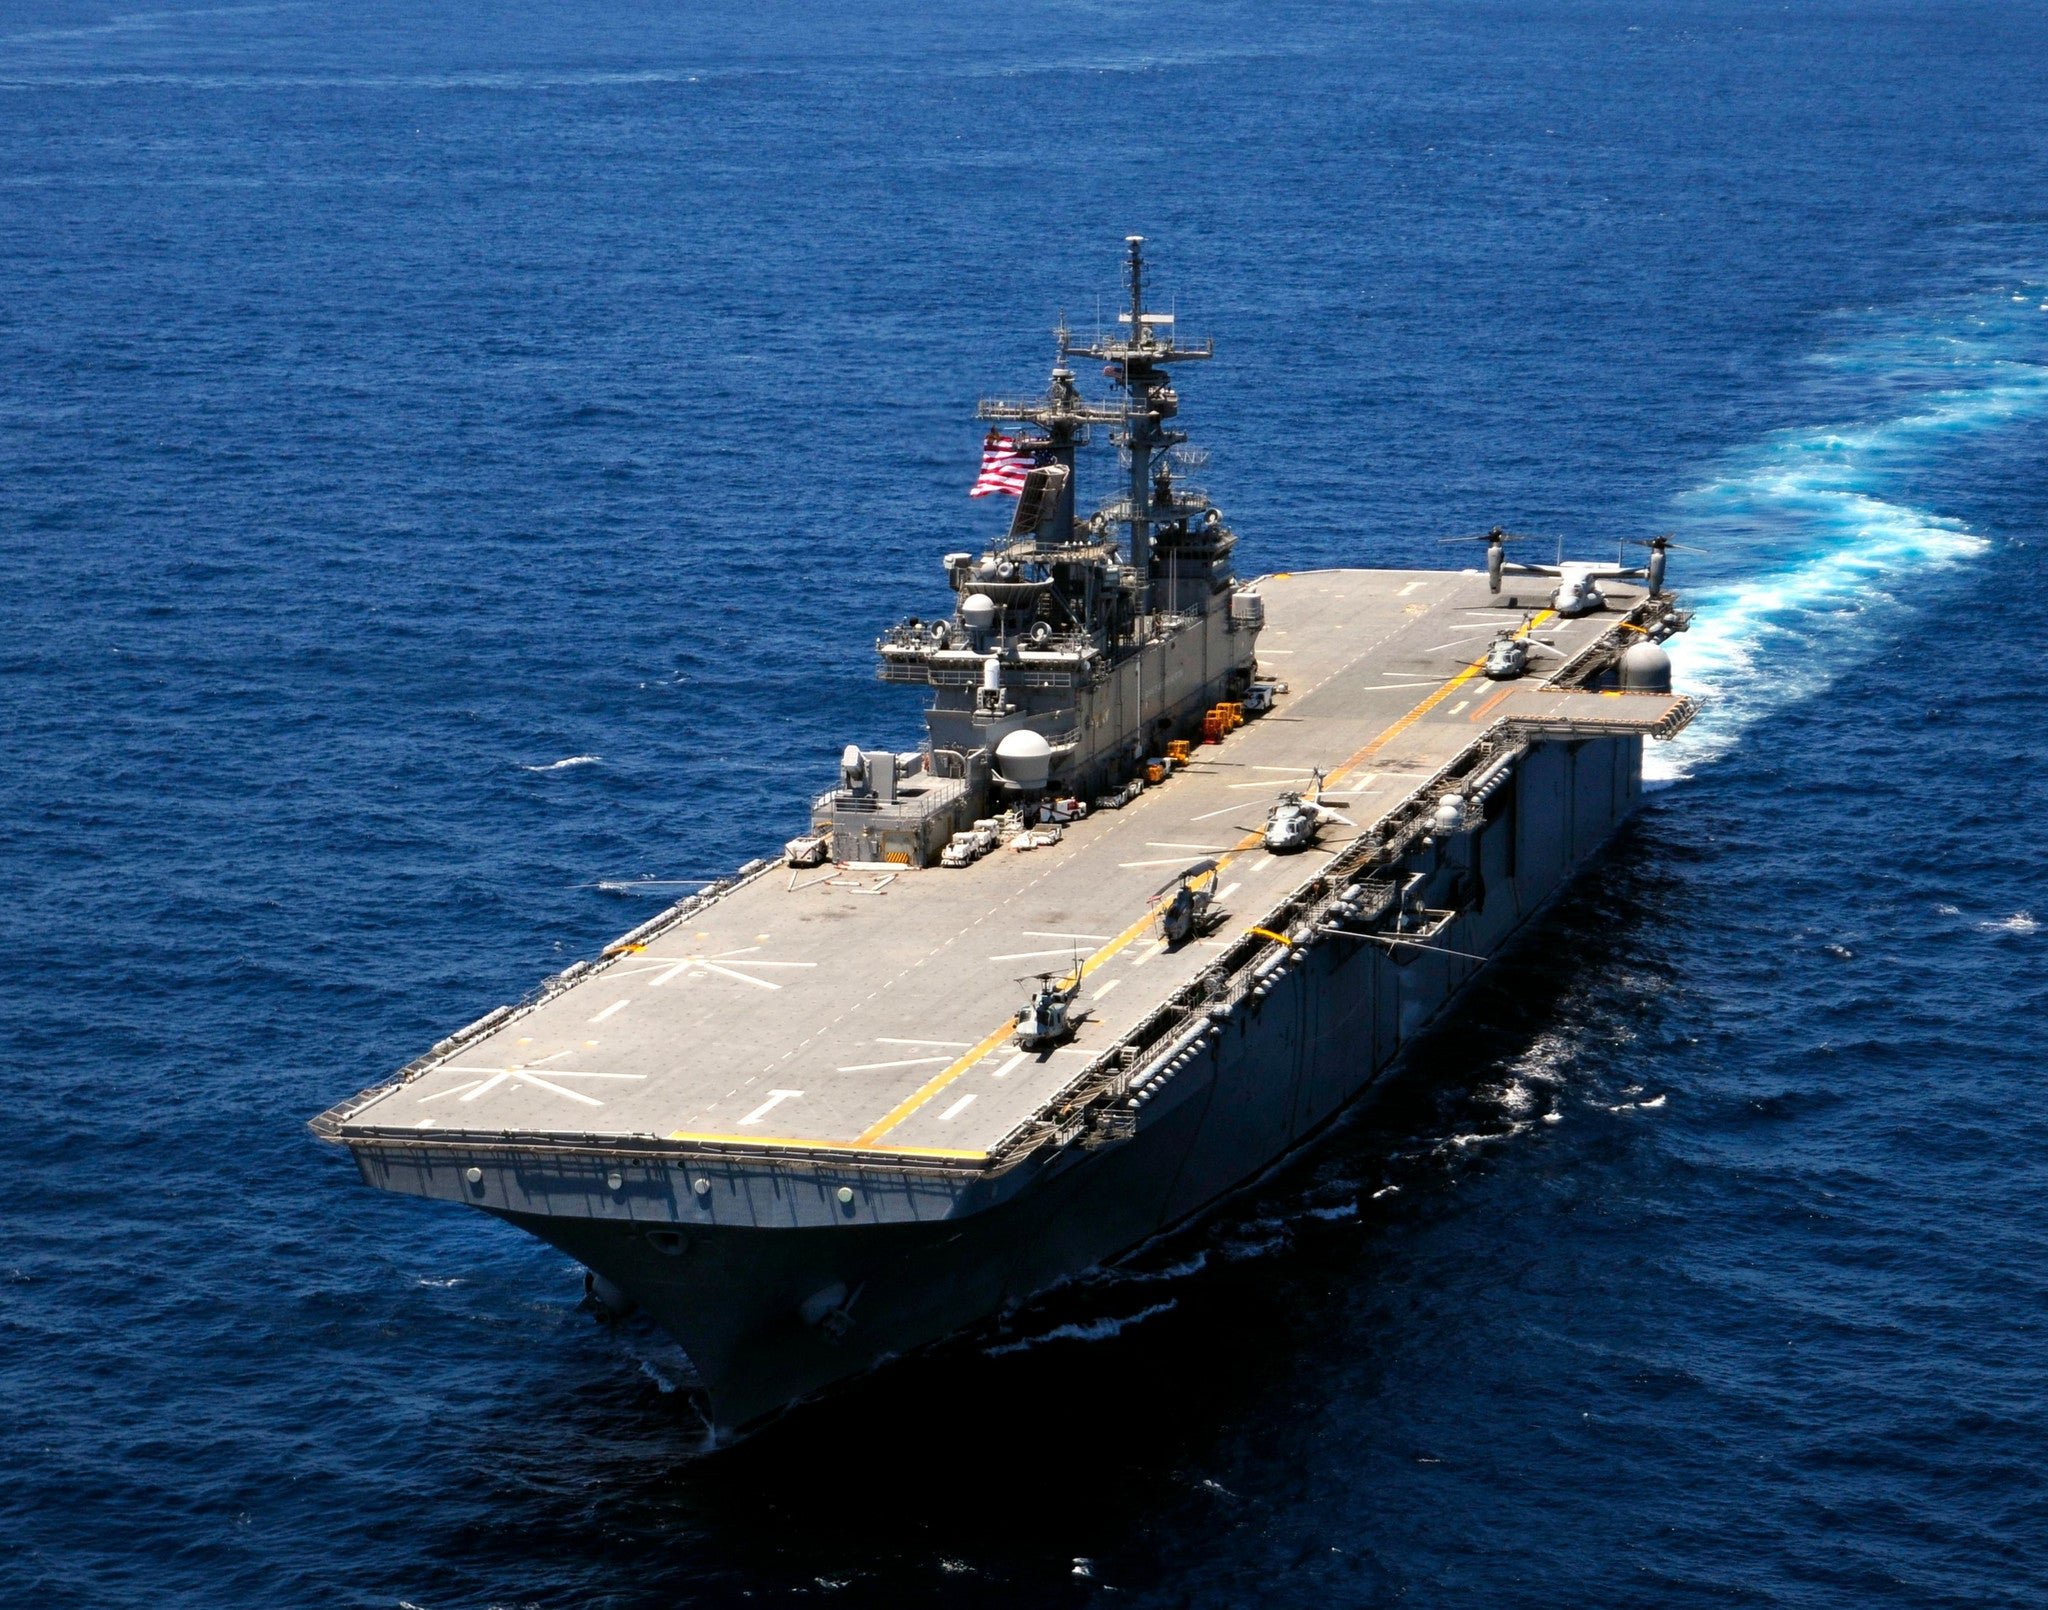 "USS Wasp LHD-1 Atlantic Ocean Multi-national Exercise June 27, 2012 - 8 x 10"" Photograph"